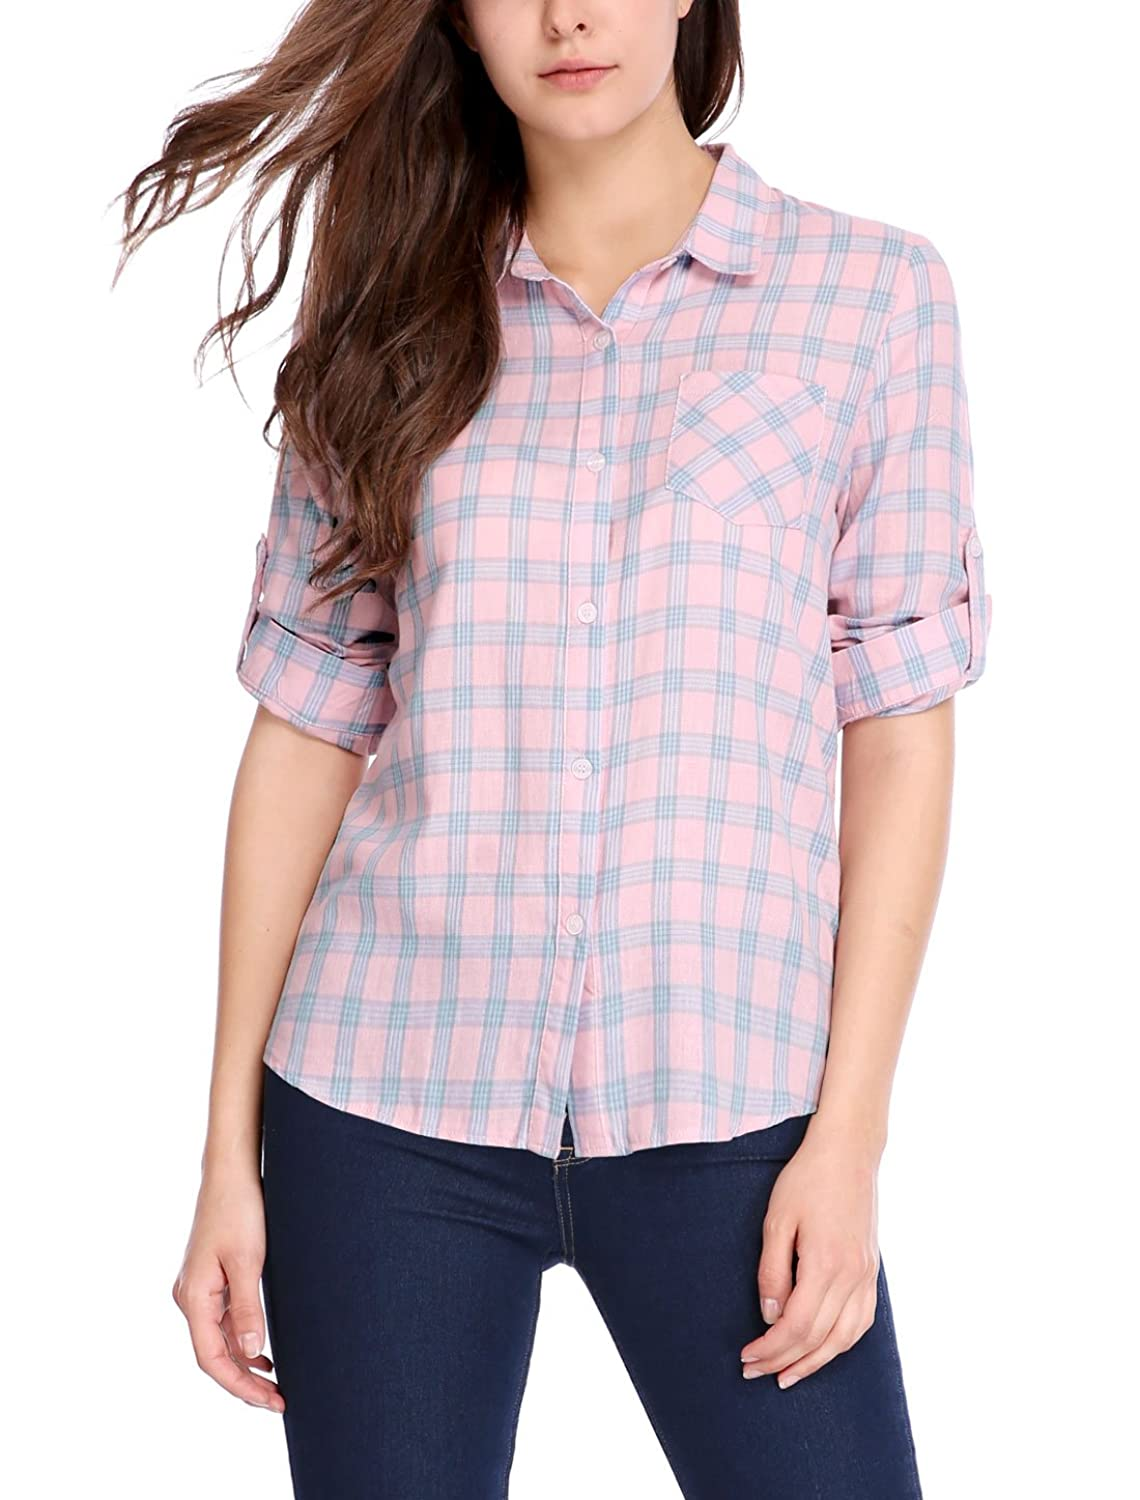 Allegra K Women's Convertible Sleeves Hi-Lo Hem Pocket Plaid Shirt